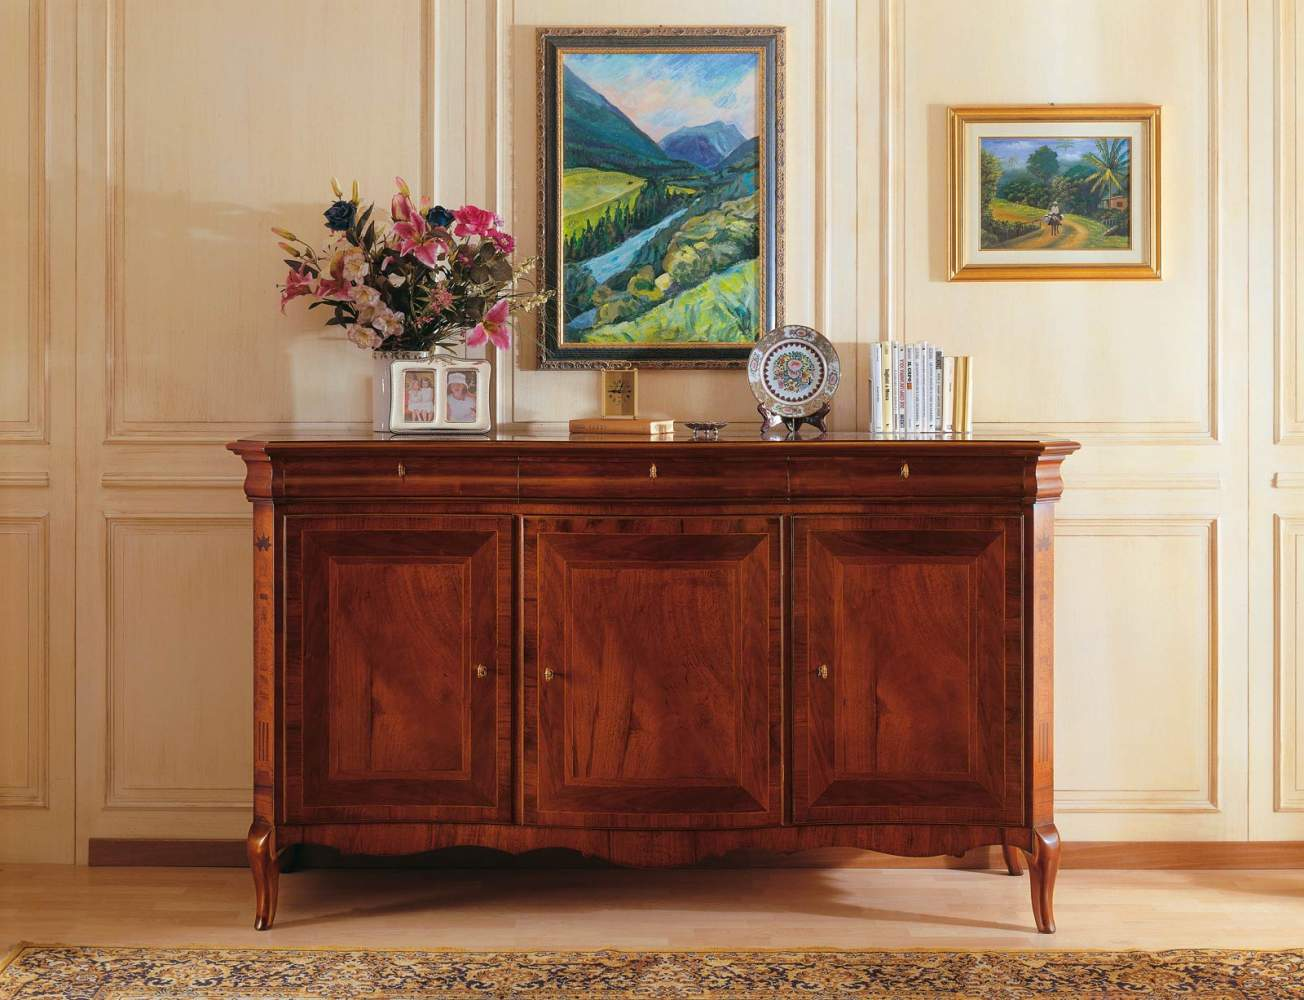 Walnut sideboard in 19th century french syle